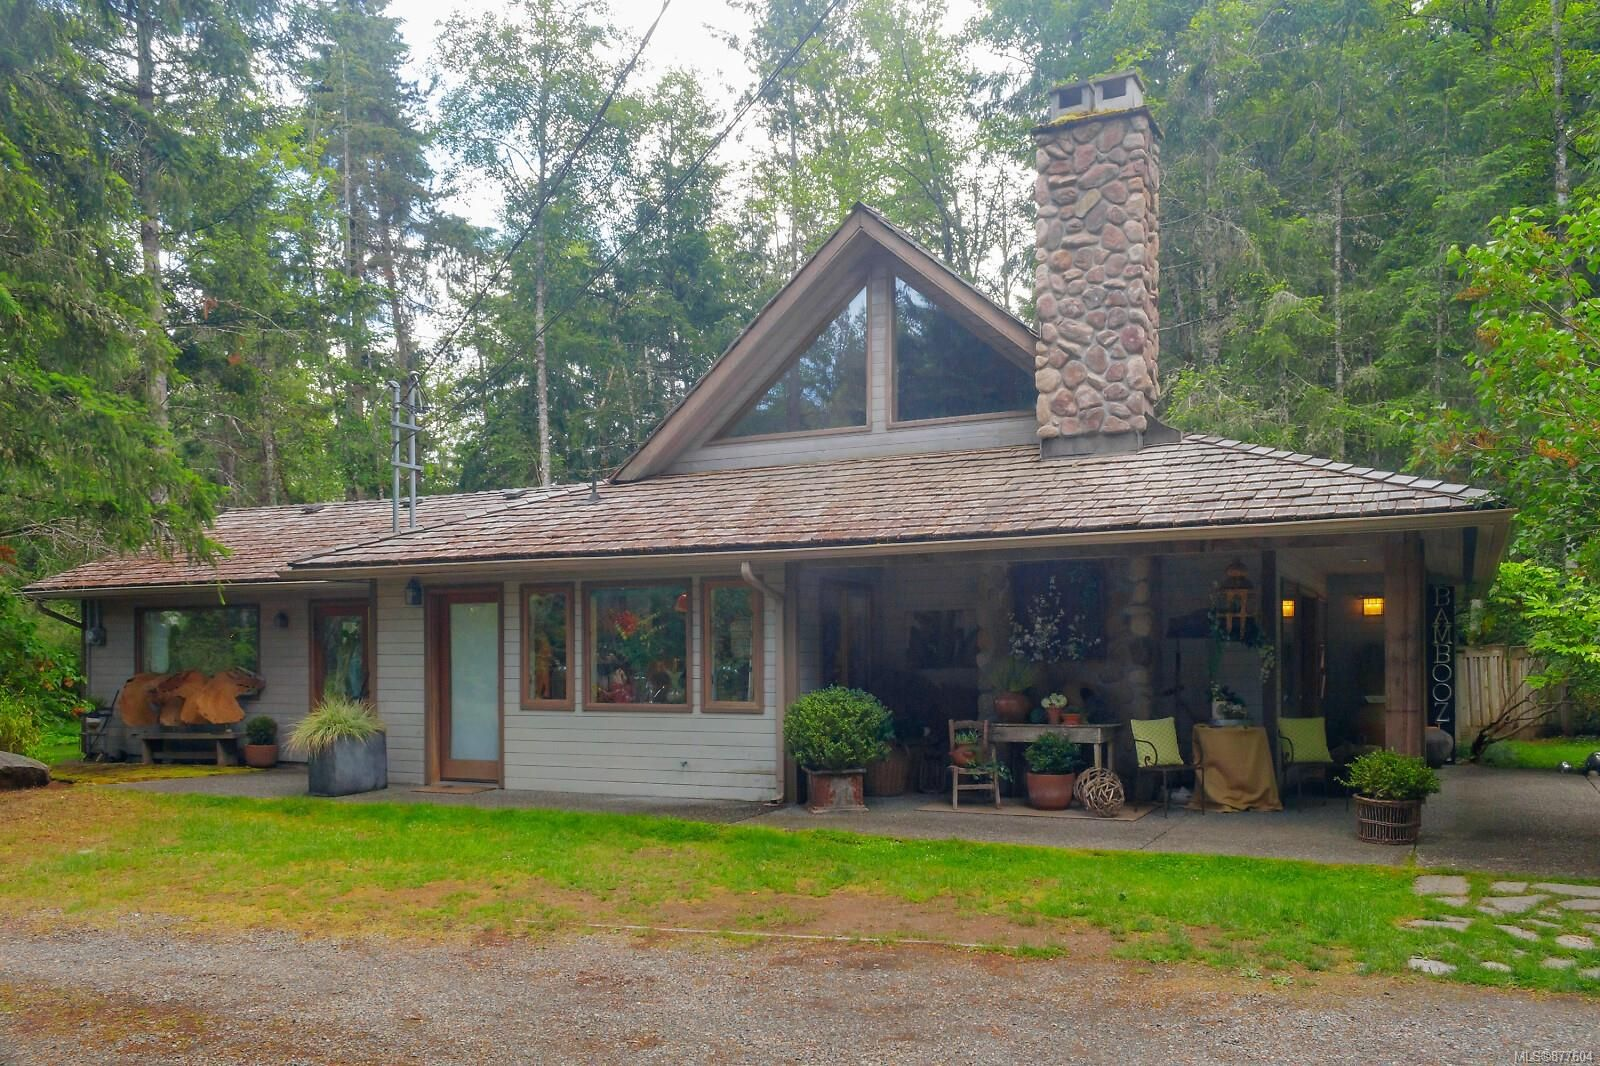 Main Photo: 774 Shawn Rd in : PQ Errington/Coombs/Hilliers House for sale (Parksville/Qualicum)  : MLS®# 877604